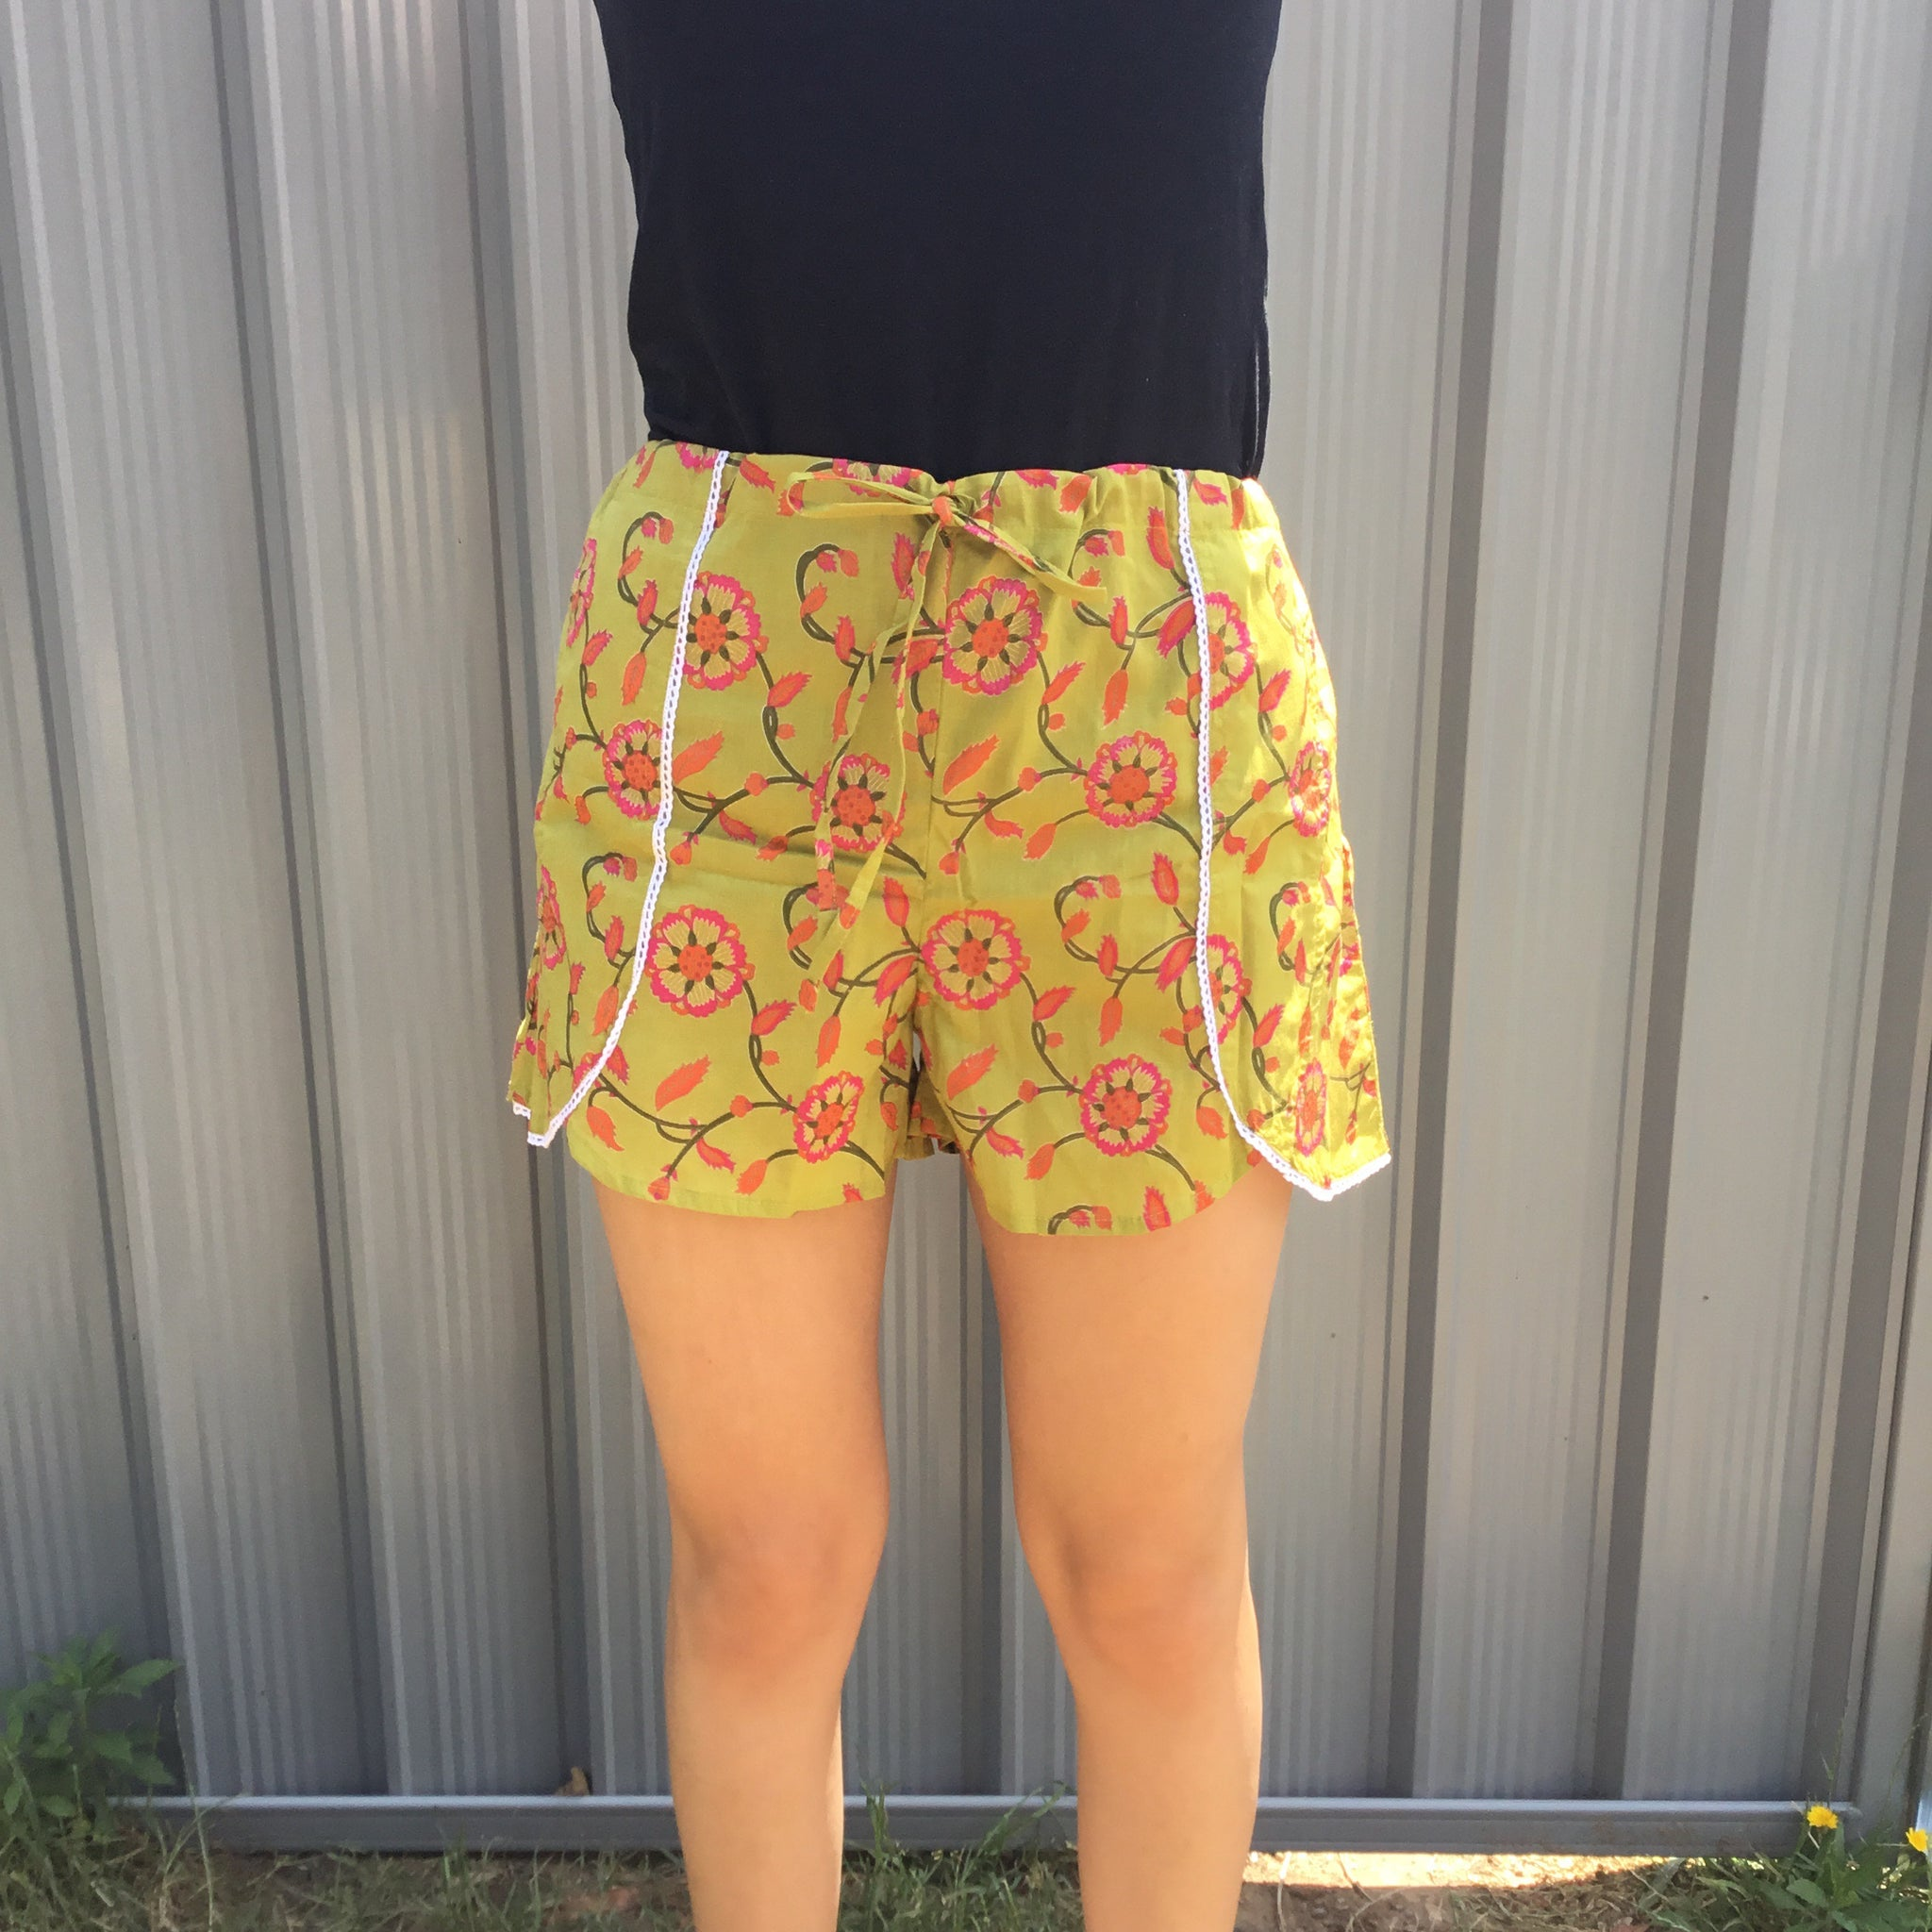 Fair Trade Ethical Floral Jammie Shorts Olive & Pink